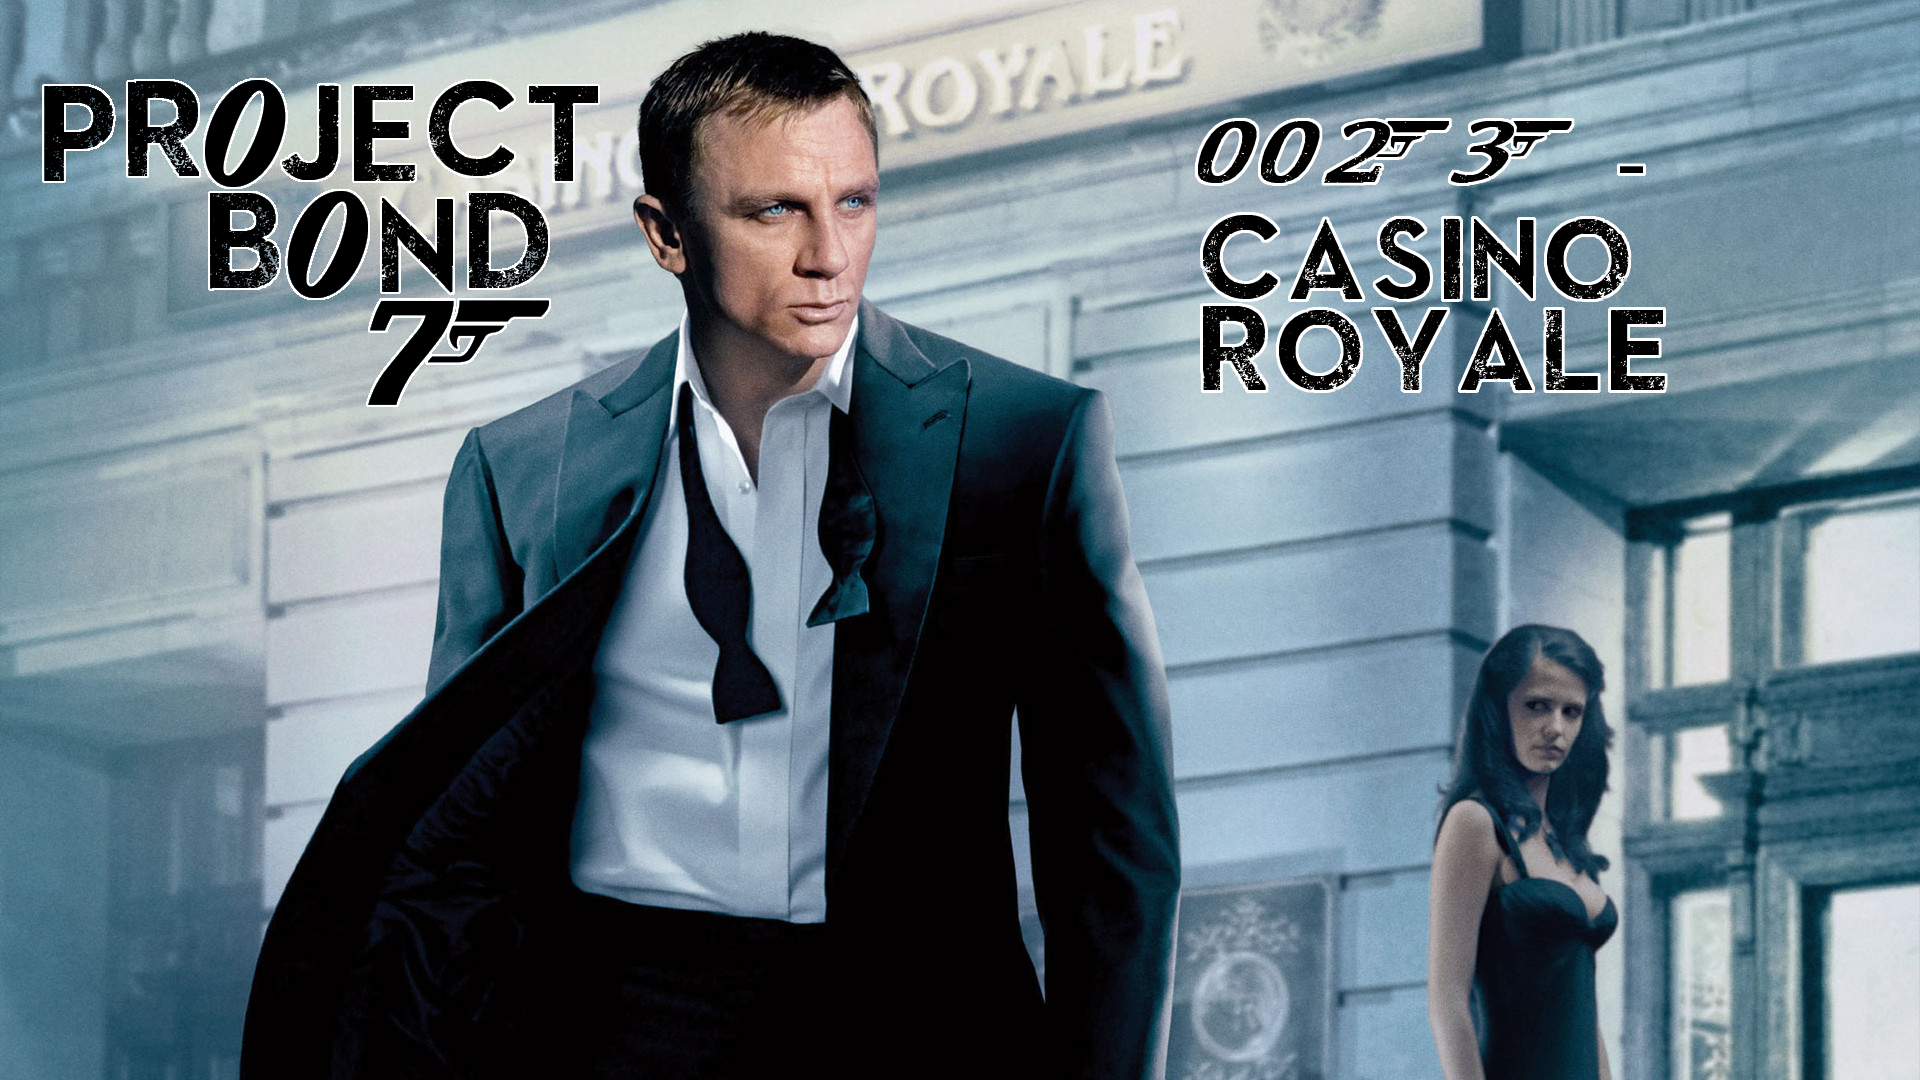 2006 james bond casino royale texas attorney general gambling